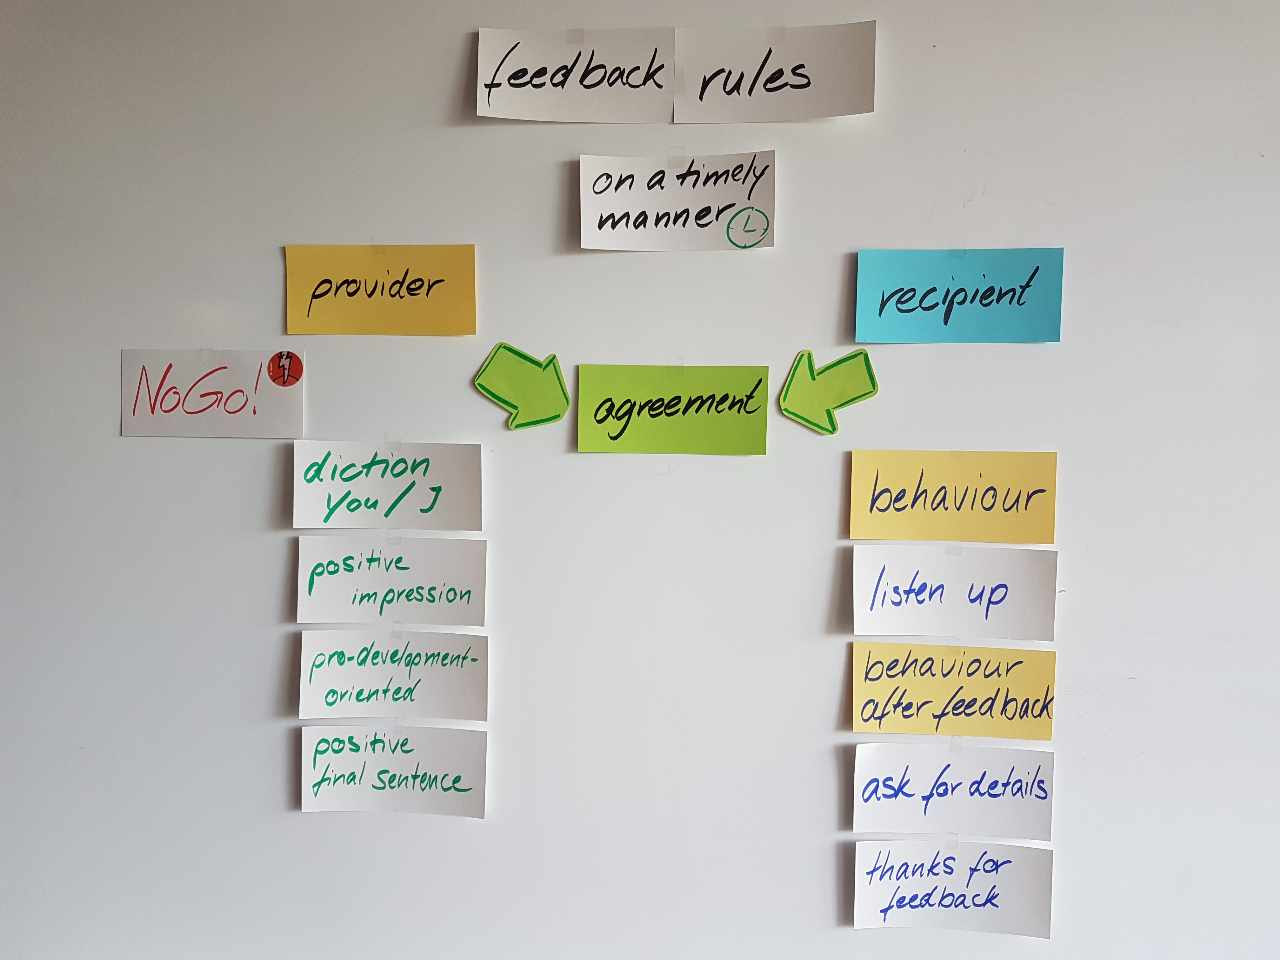 The process of feedback roughly at a glance.